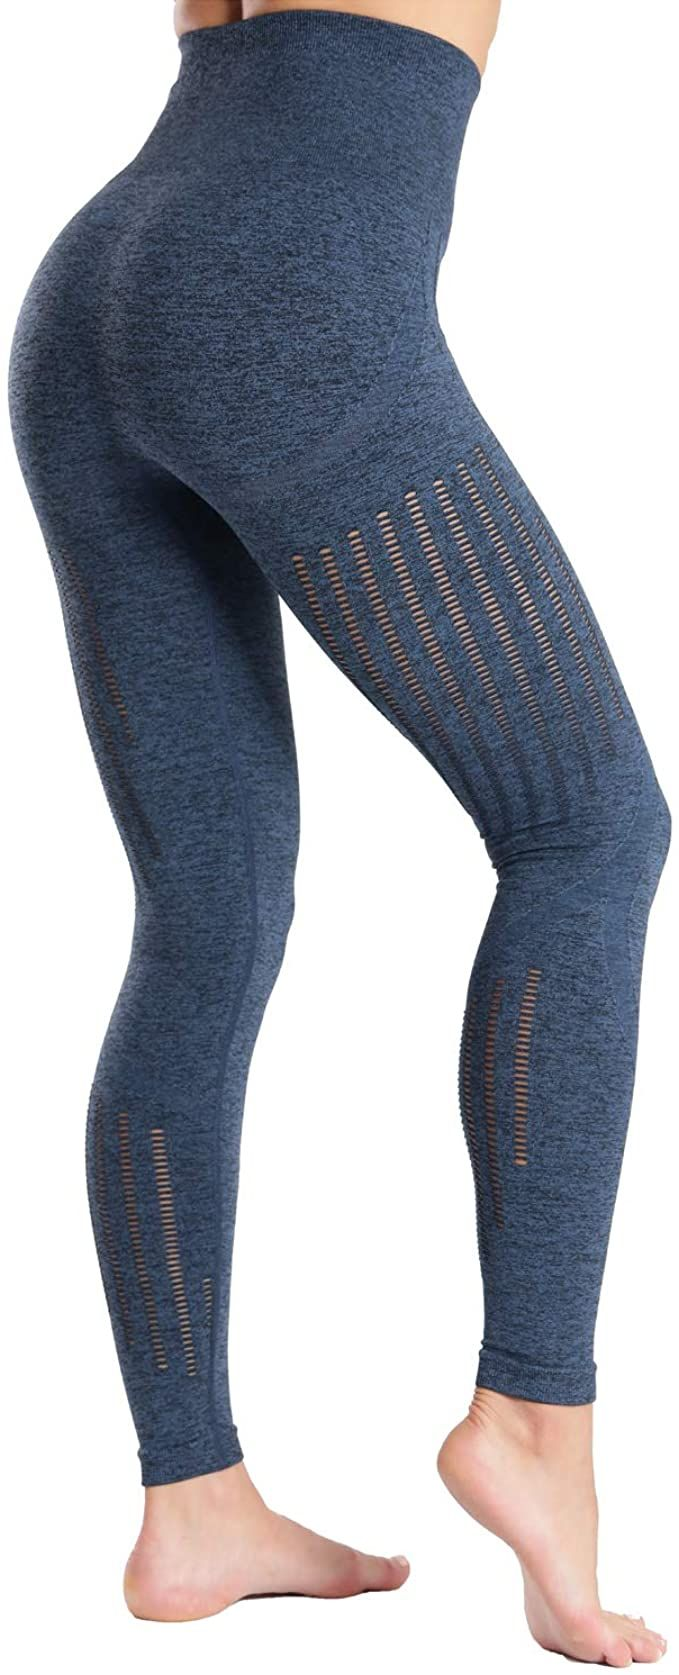 The 20 Best Butt-Lifting Leggings to